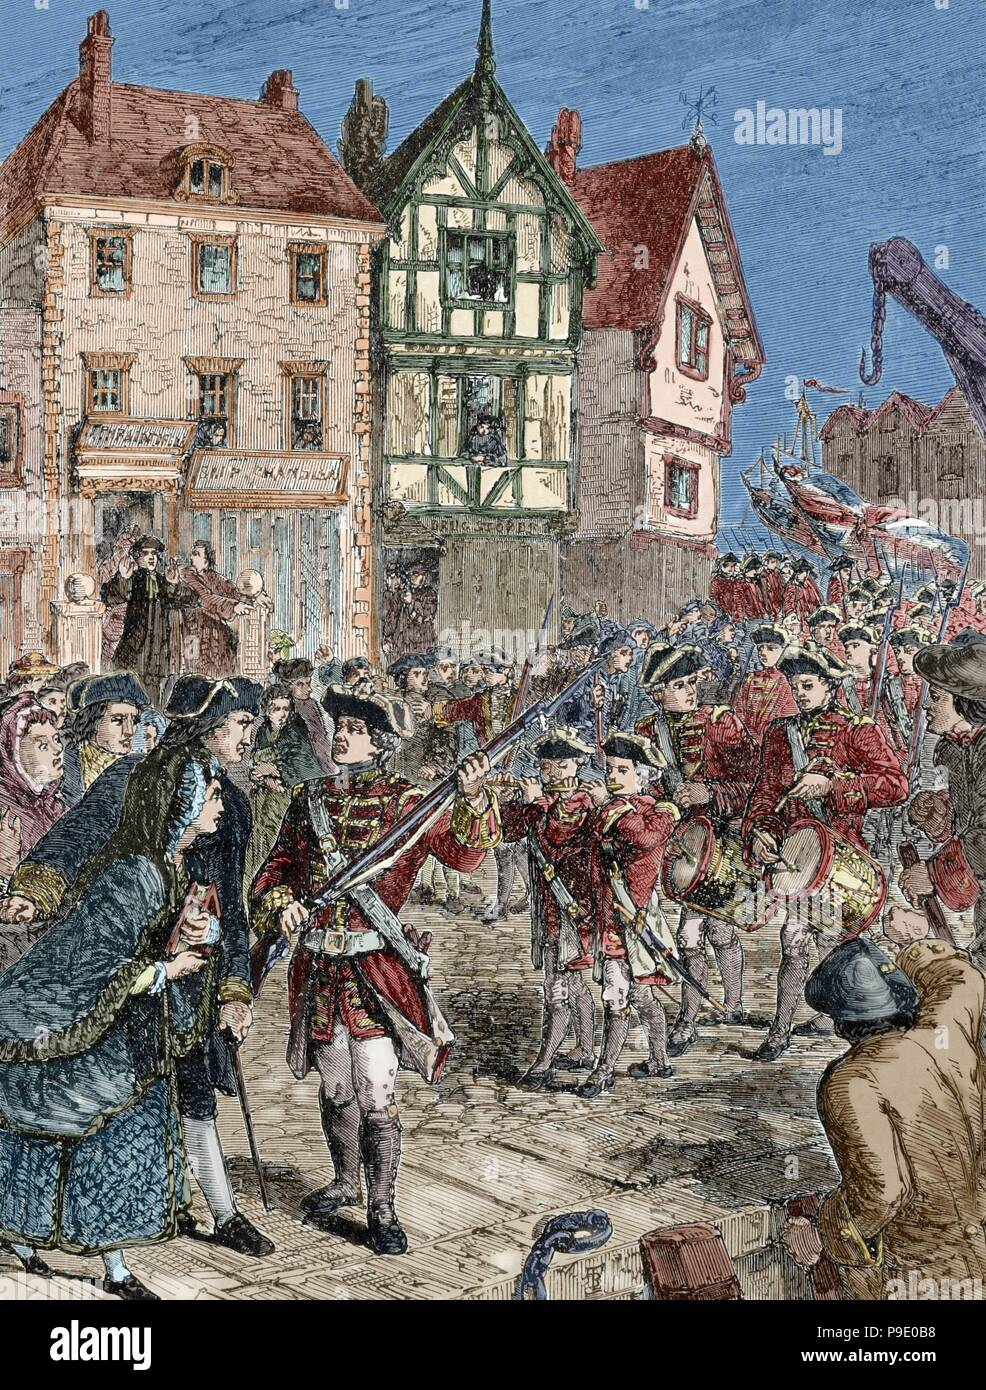 American Revolutionary War (1775-1783). Boston. Citizens hostile with the British soldiers. Engraving. 19th century. Colored. Stock Photo